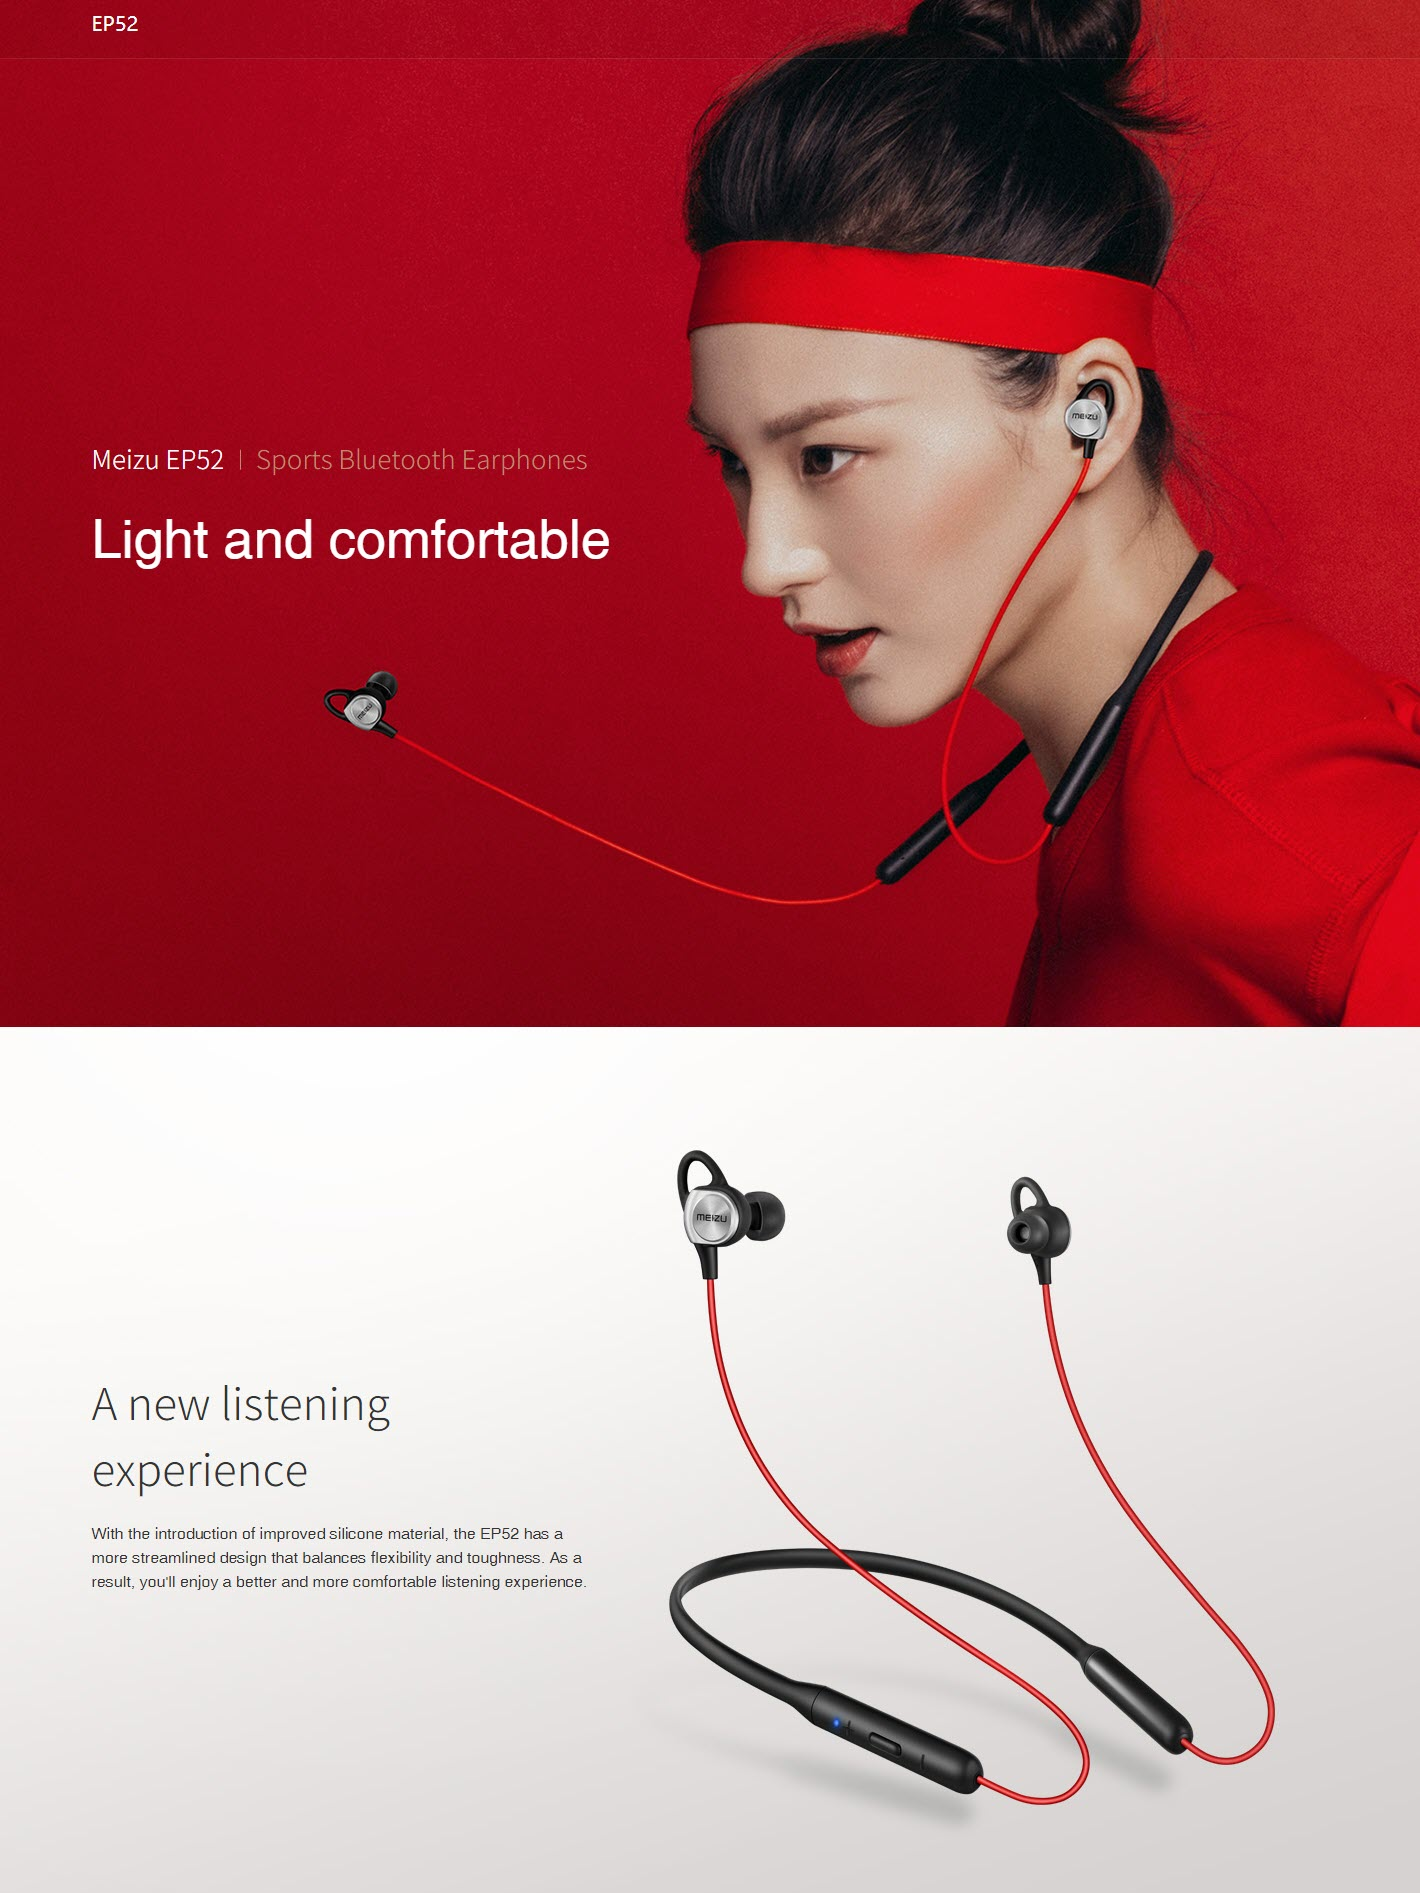 Meizu Ep52 Sports Bluetooth Earphones (13)